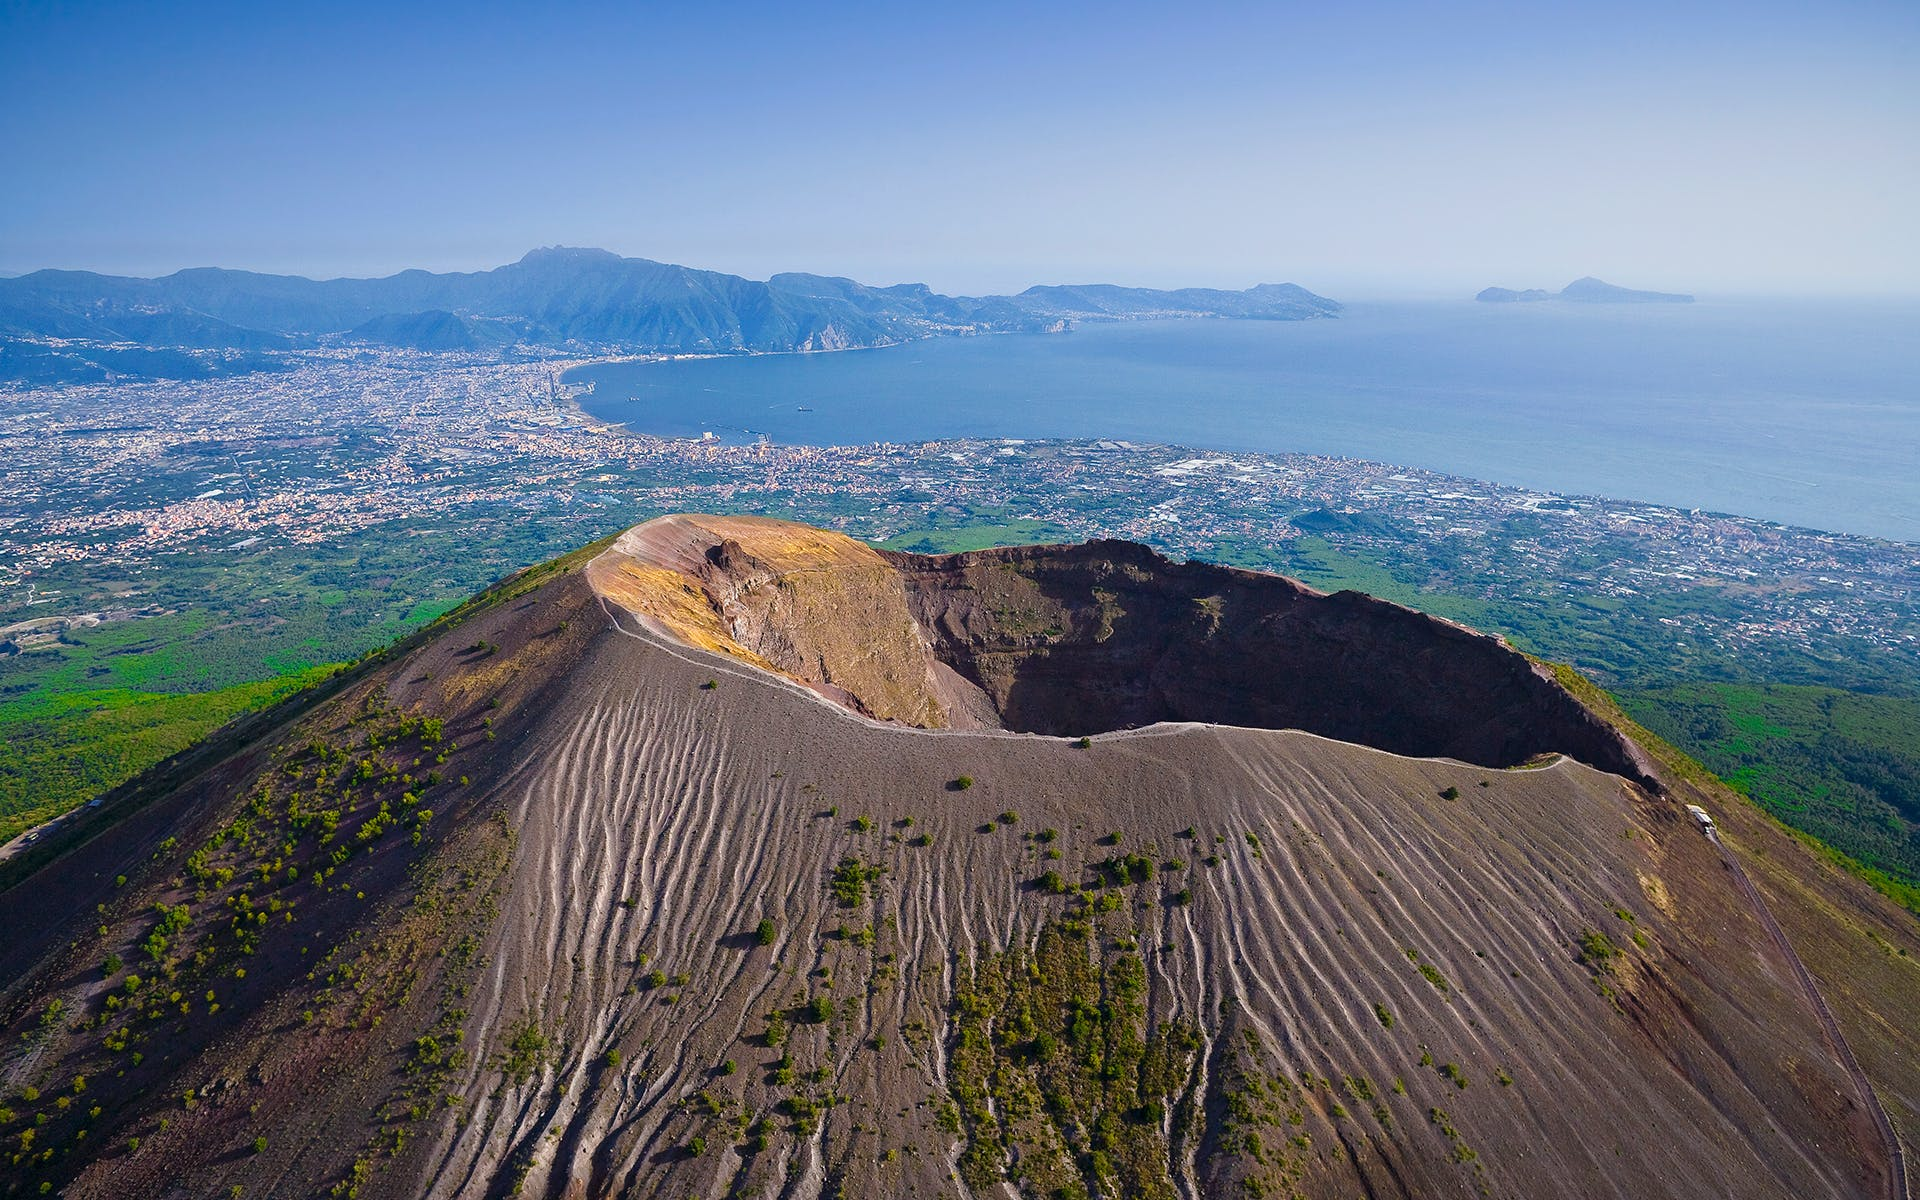 pompeii & amalfi coast full day tour from rome-2